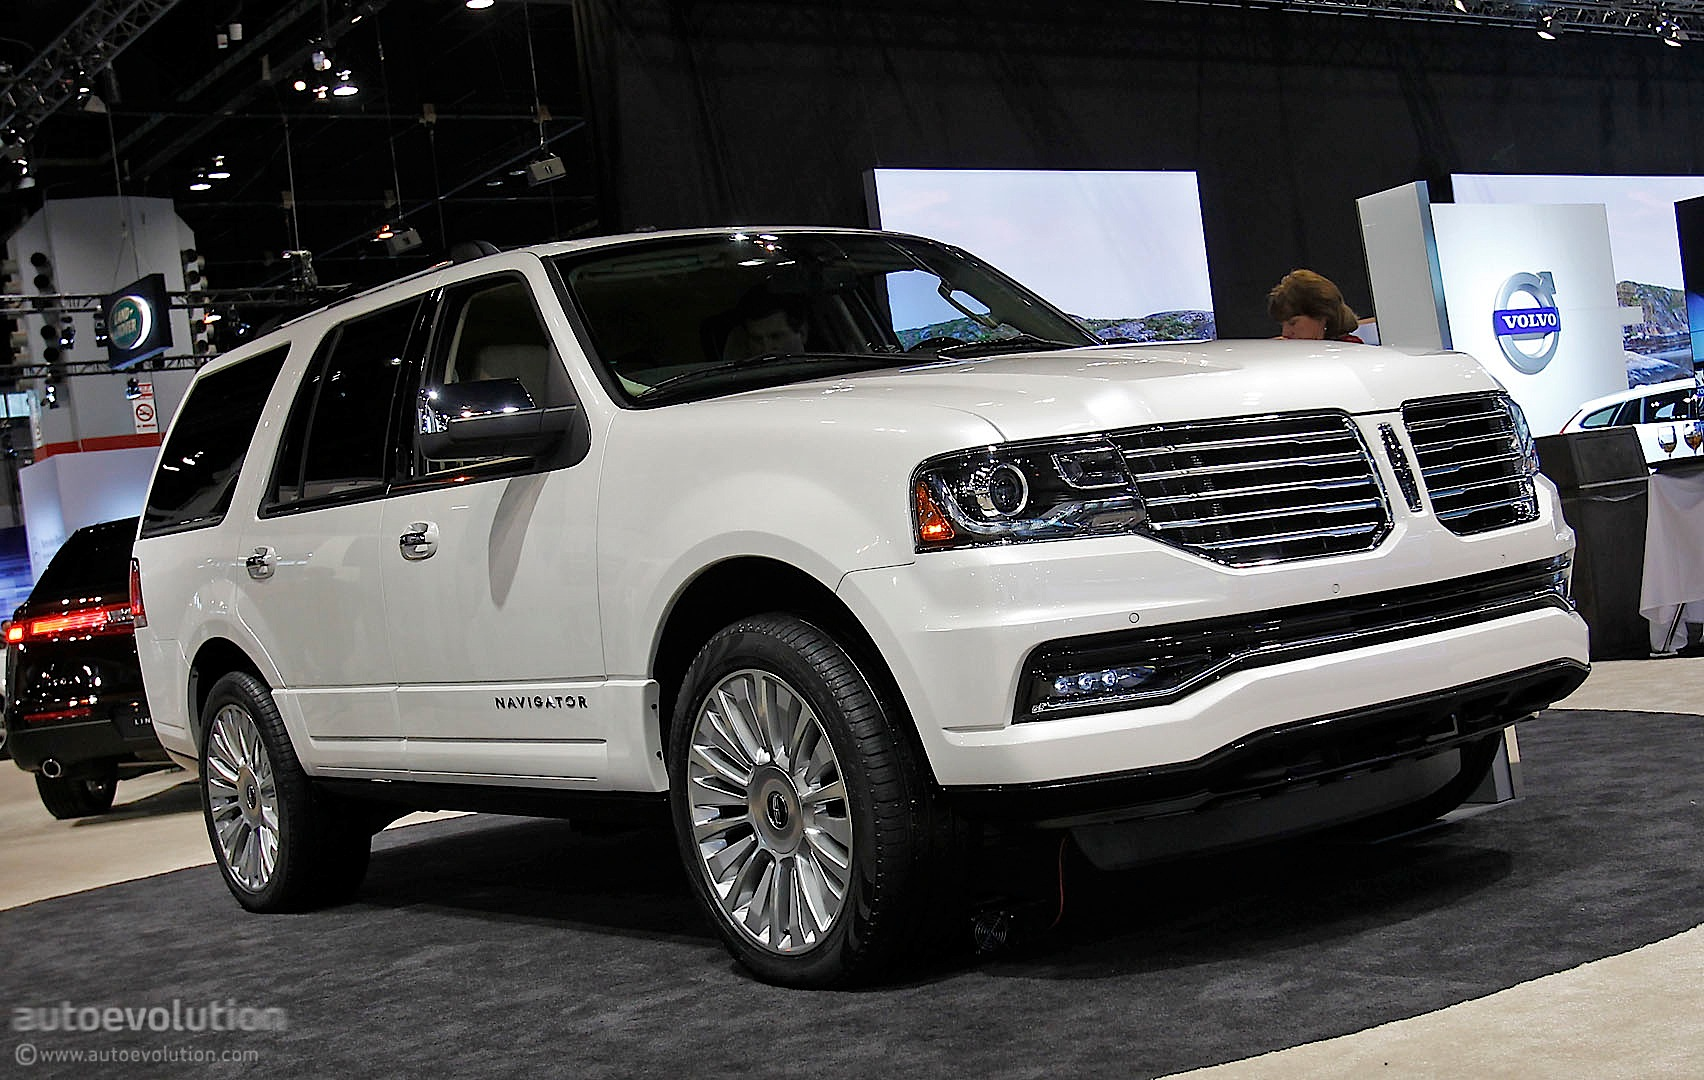 2015 lincoln navigator makes public debut at 2014 chicago live photos autoevolution. Black Bedroom Furniture Sets. Home Design Ideas